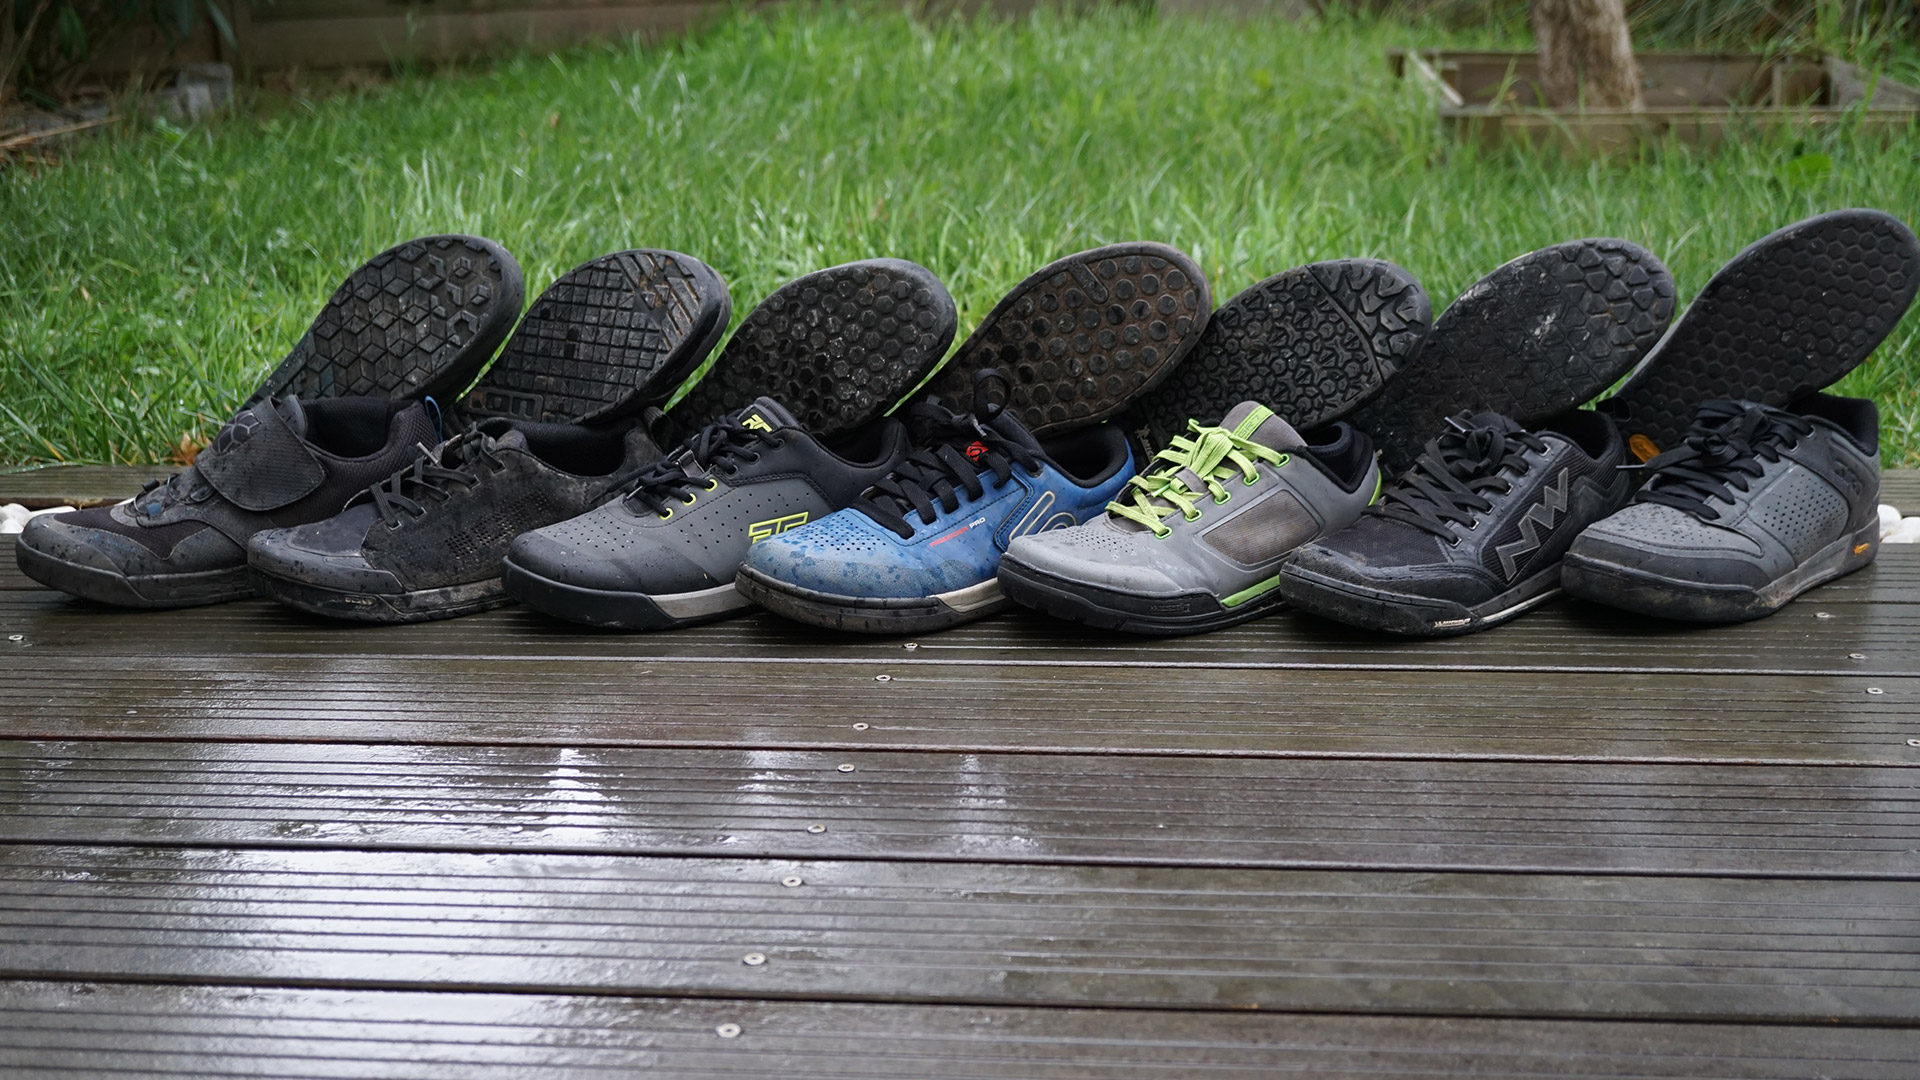 Comparatif Chaussures pedales plates